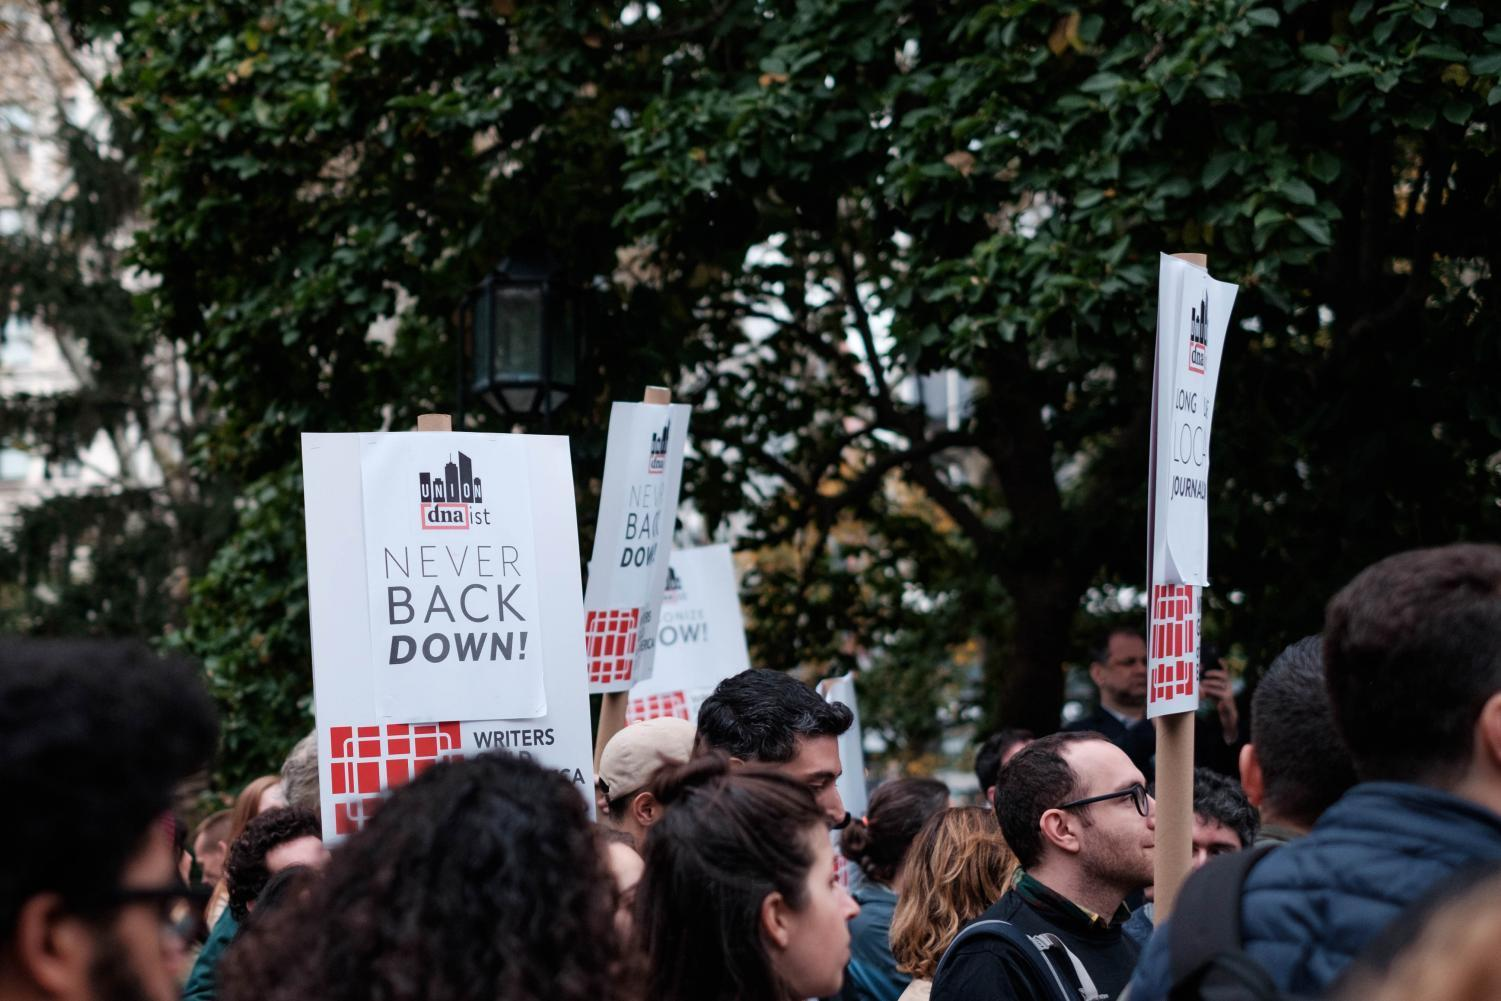 Approximately 200 people gathered to protest the shutdown of local news outlets DNAinfo and Gothamist on Nov.6 in City Hall Park.